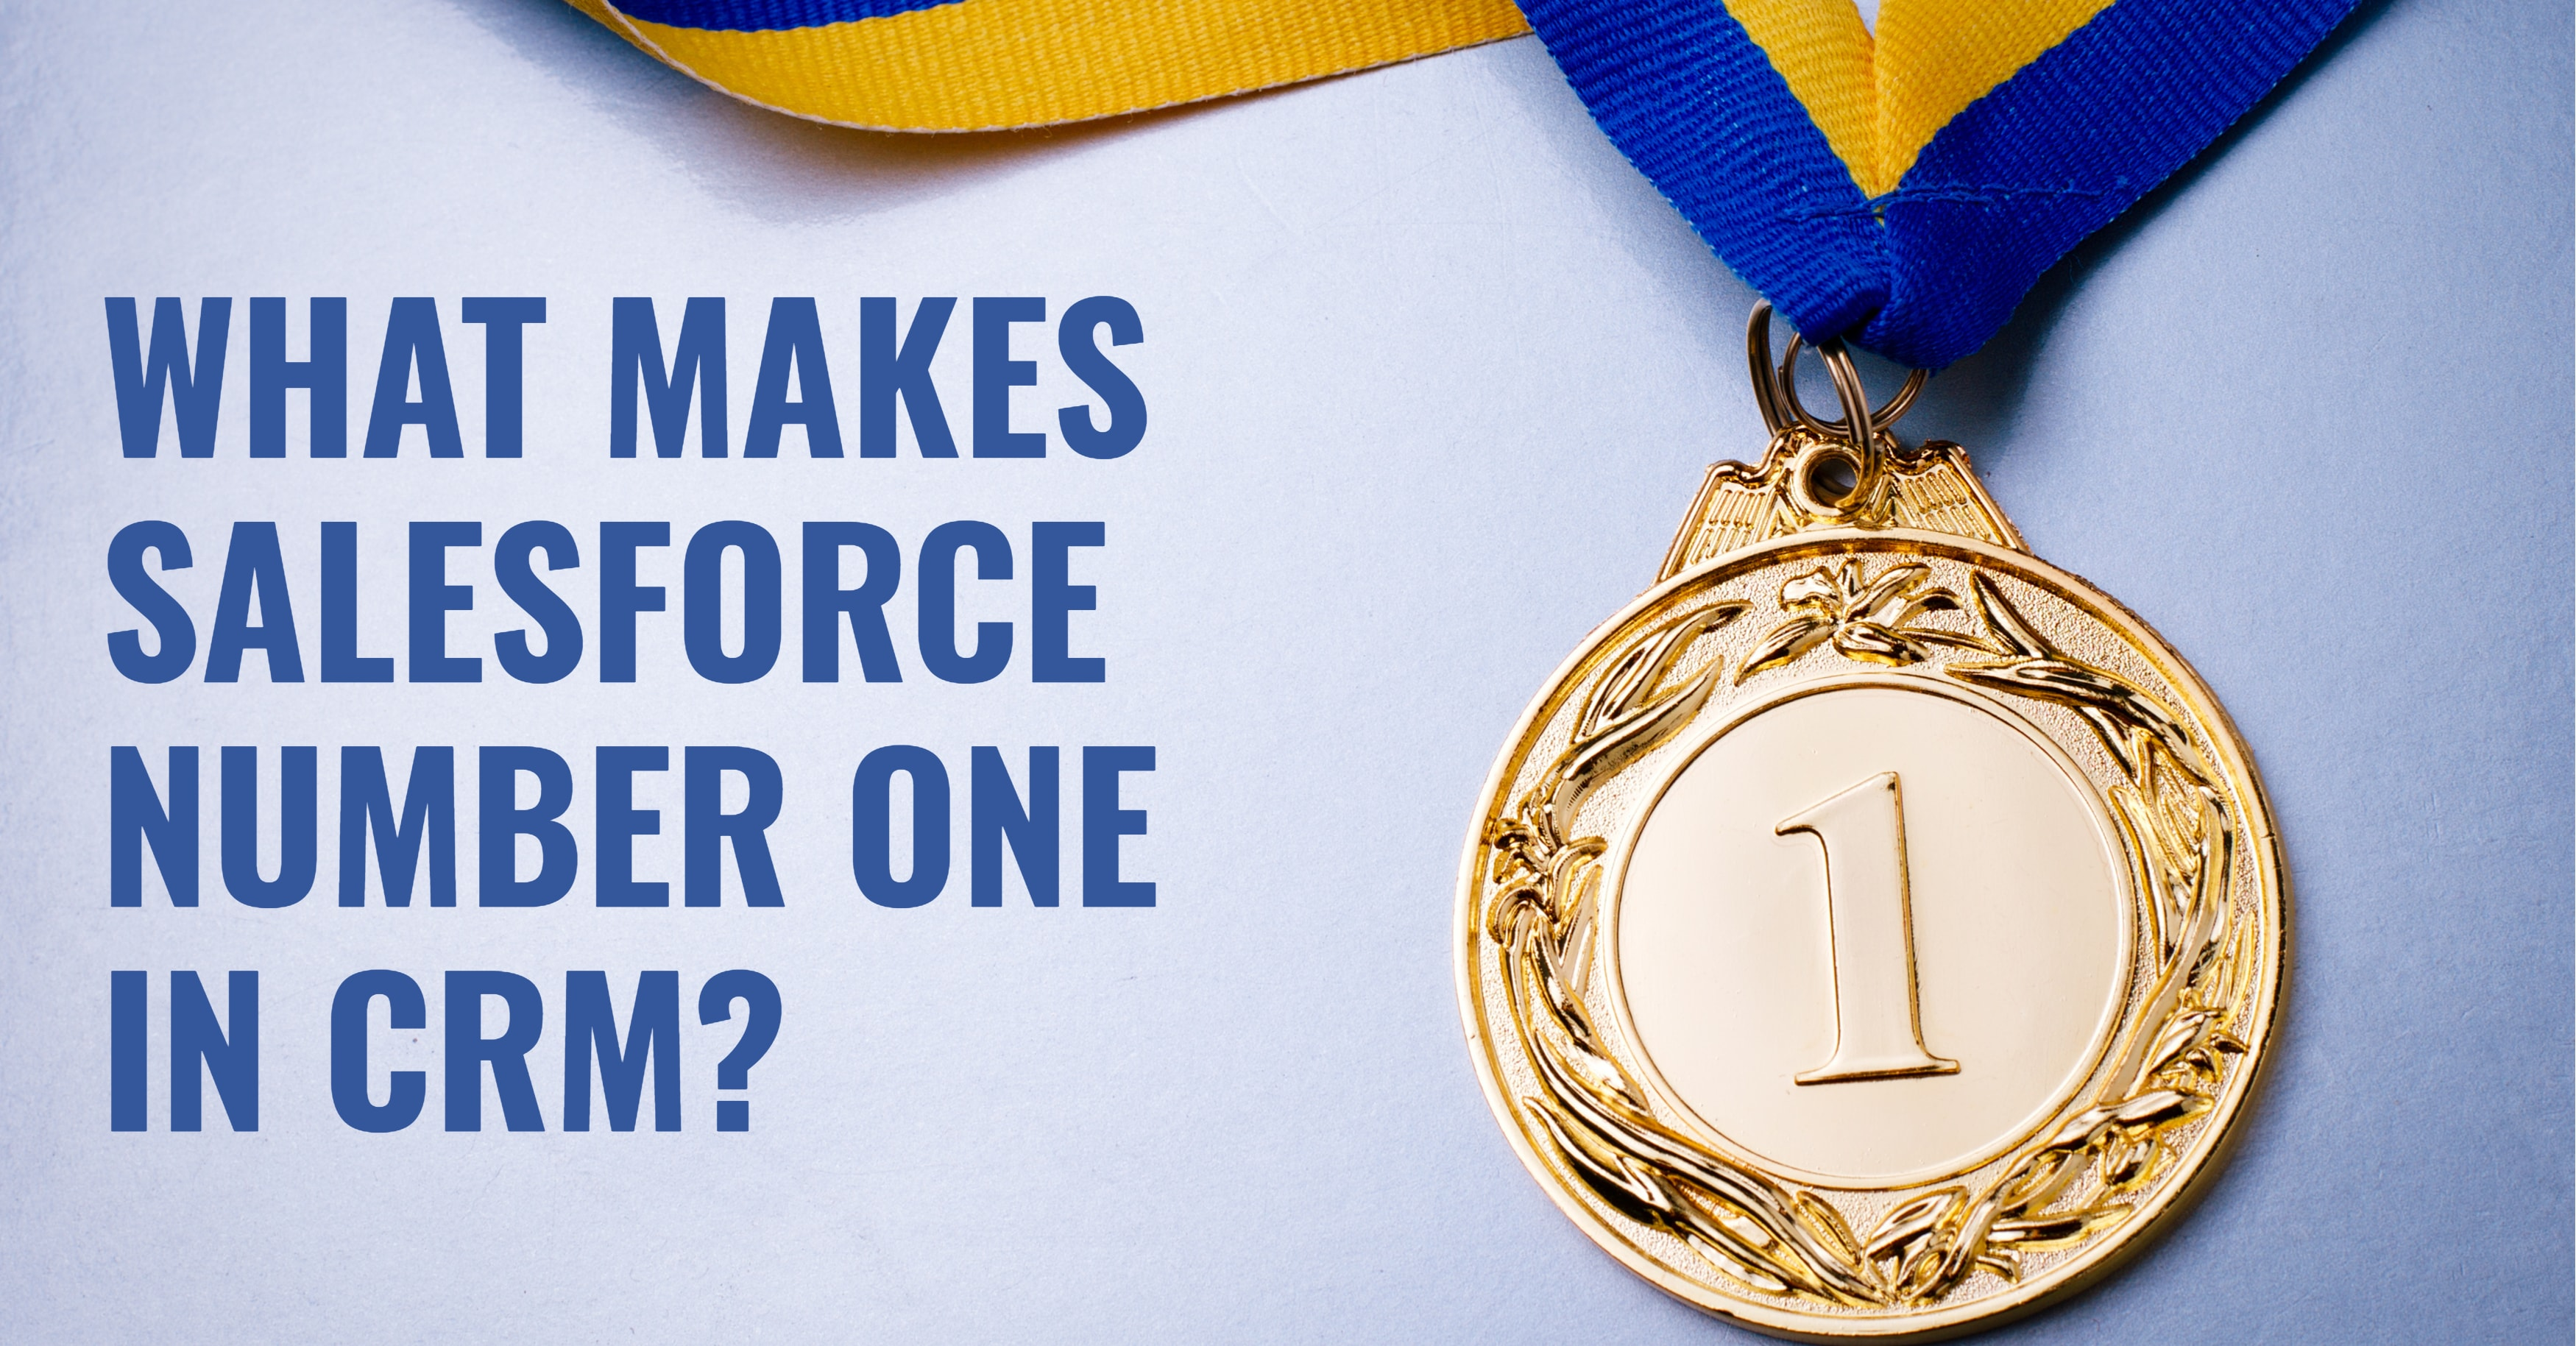 Salesforce Number One CRM